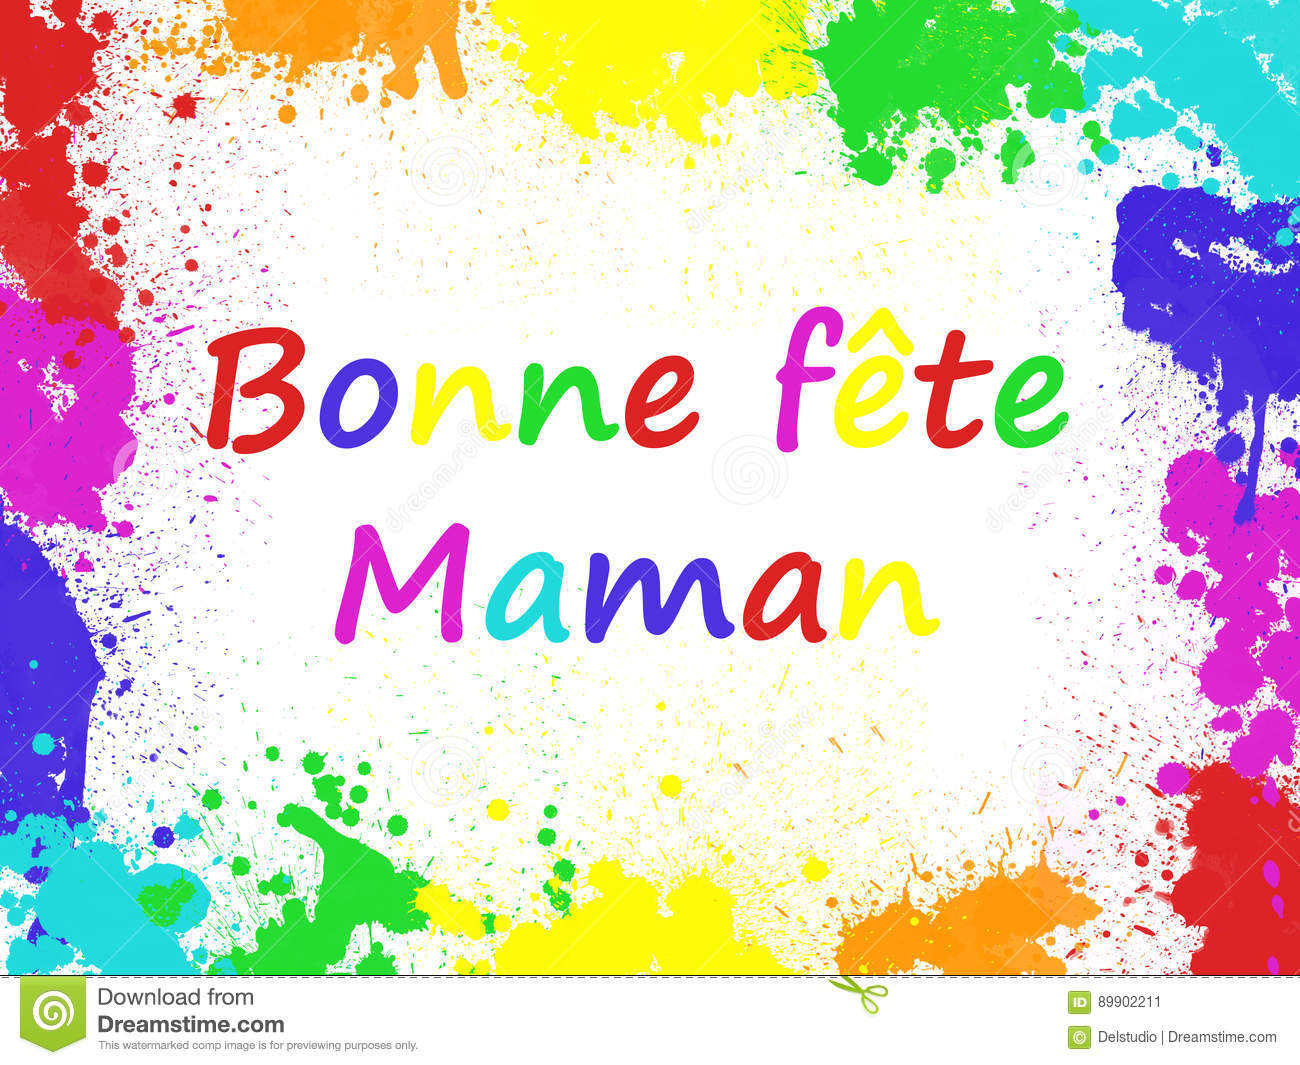 Bonne Fete Maman Meaning Happy Mothers Day In French Stock